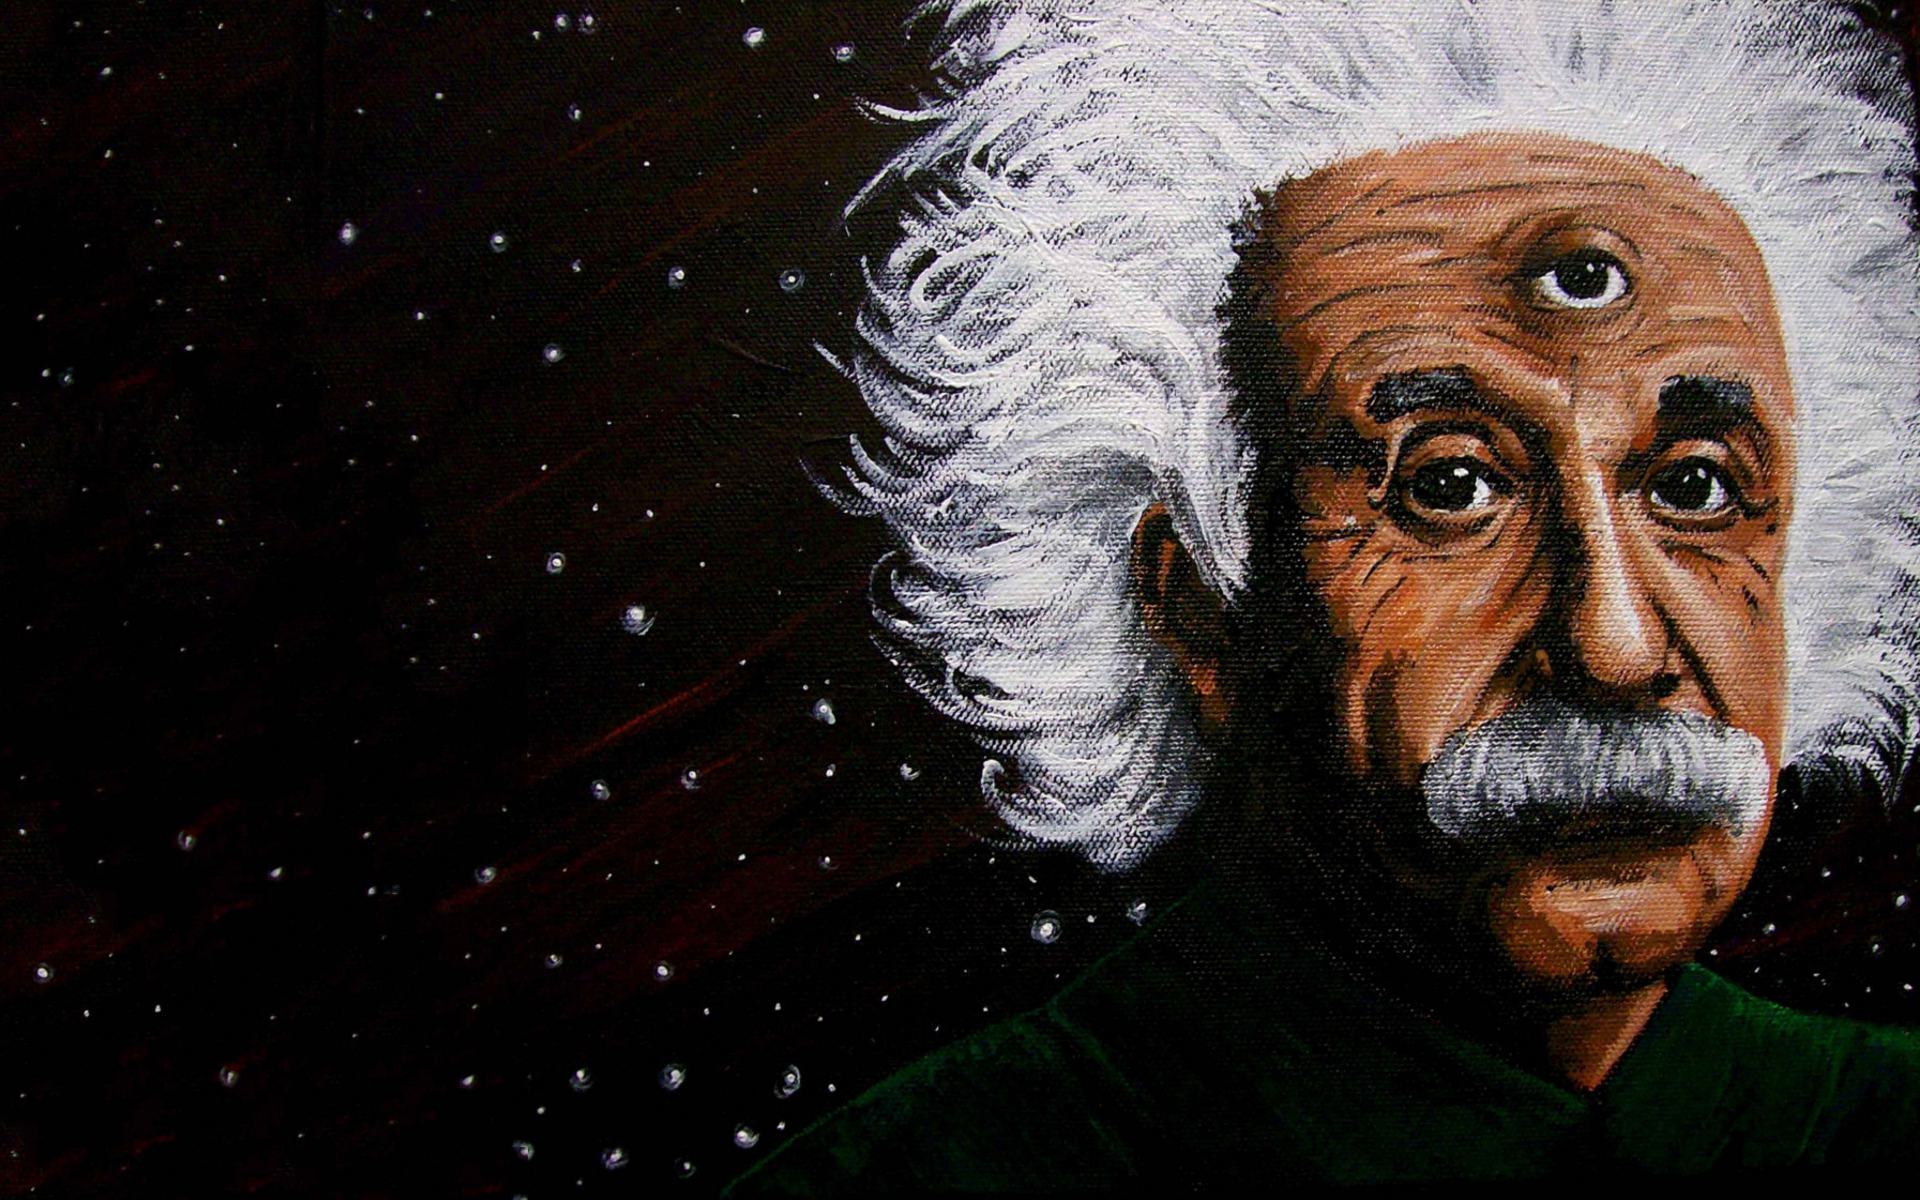 Albert Einstein Wallpapers High Quality